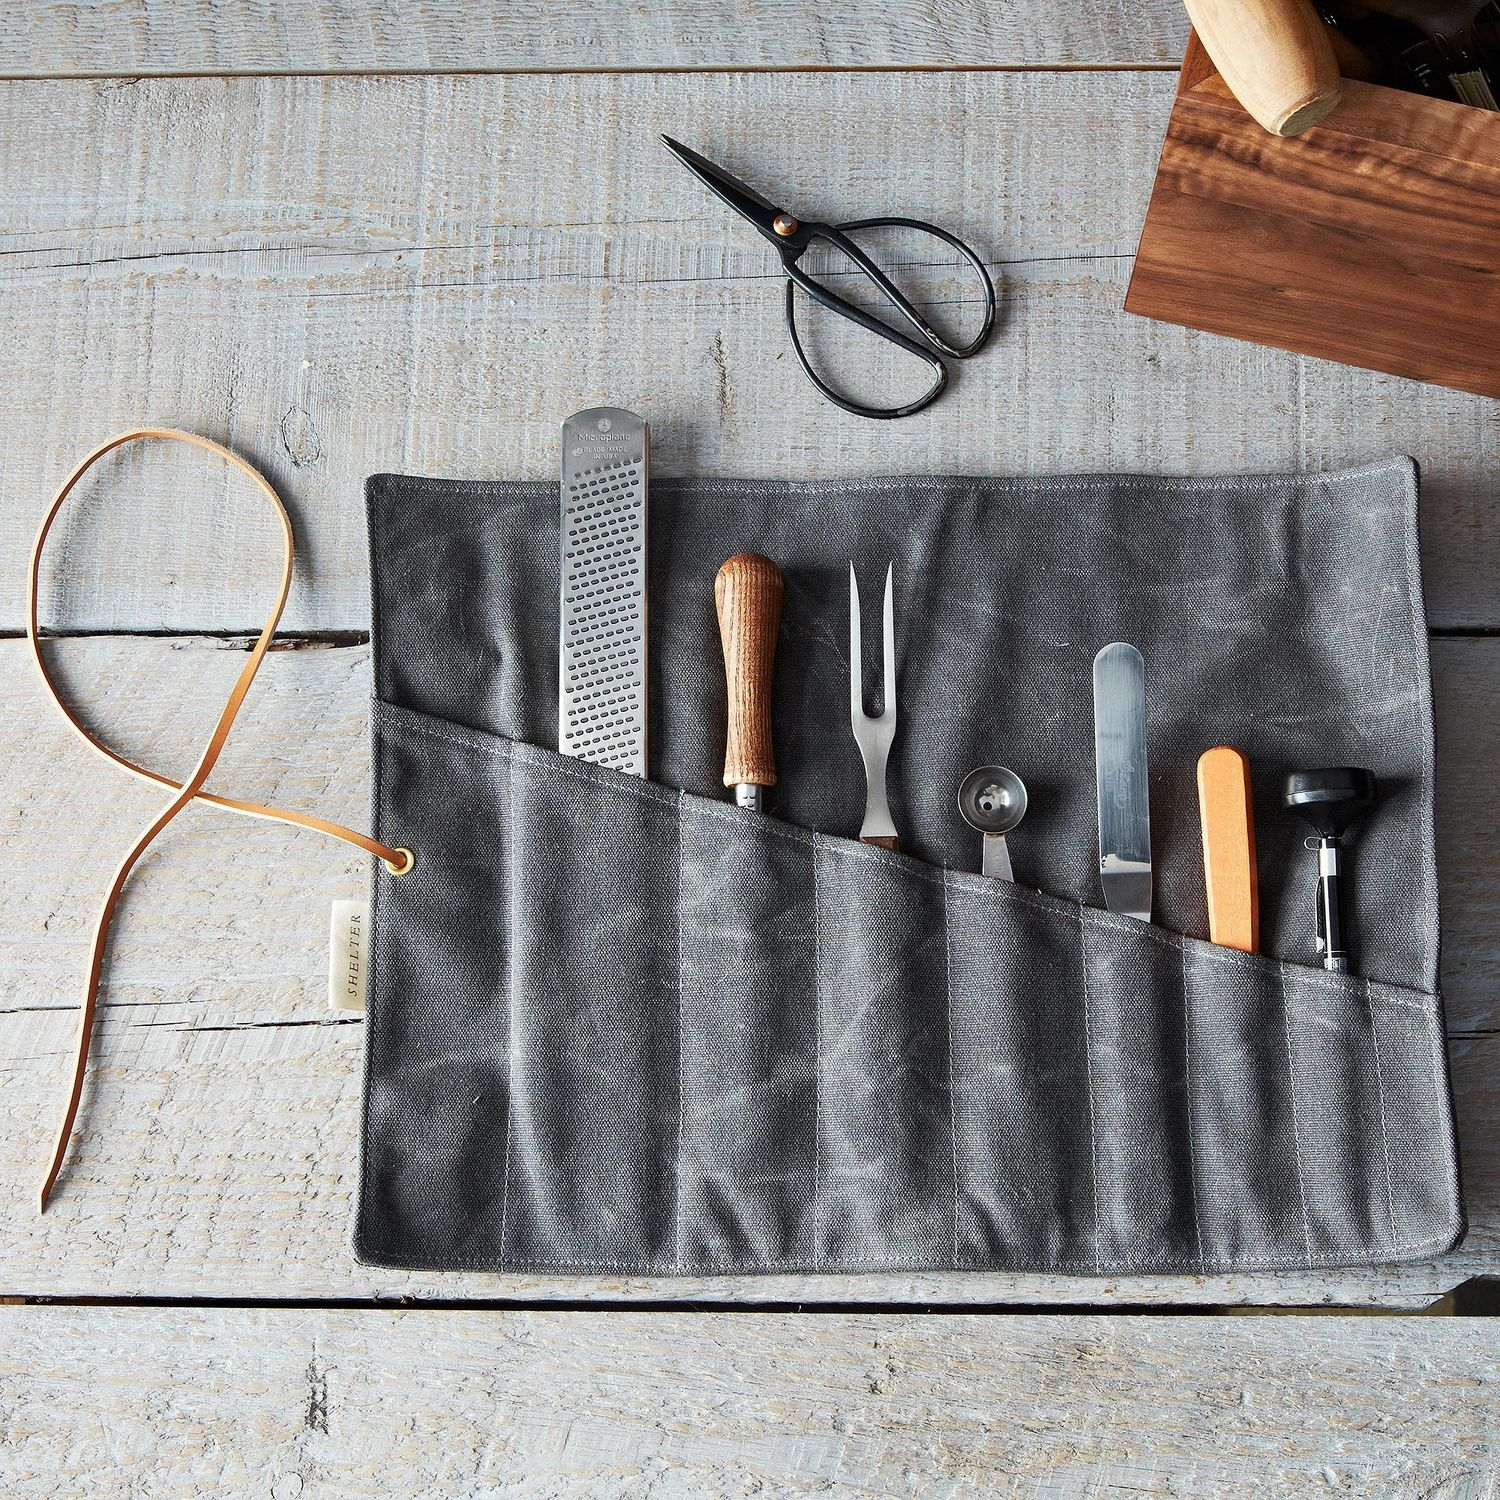 Waxed Canvas Tool Roll On Food52